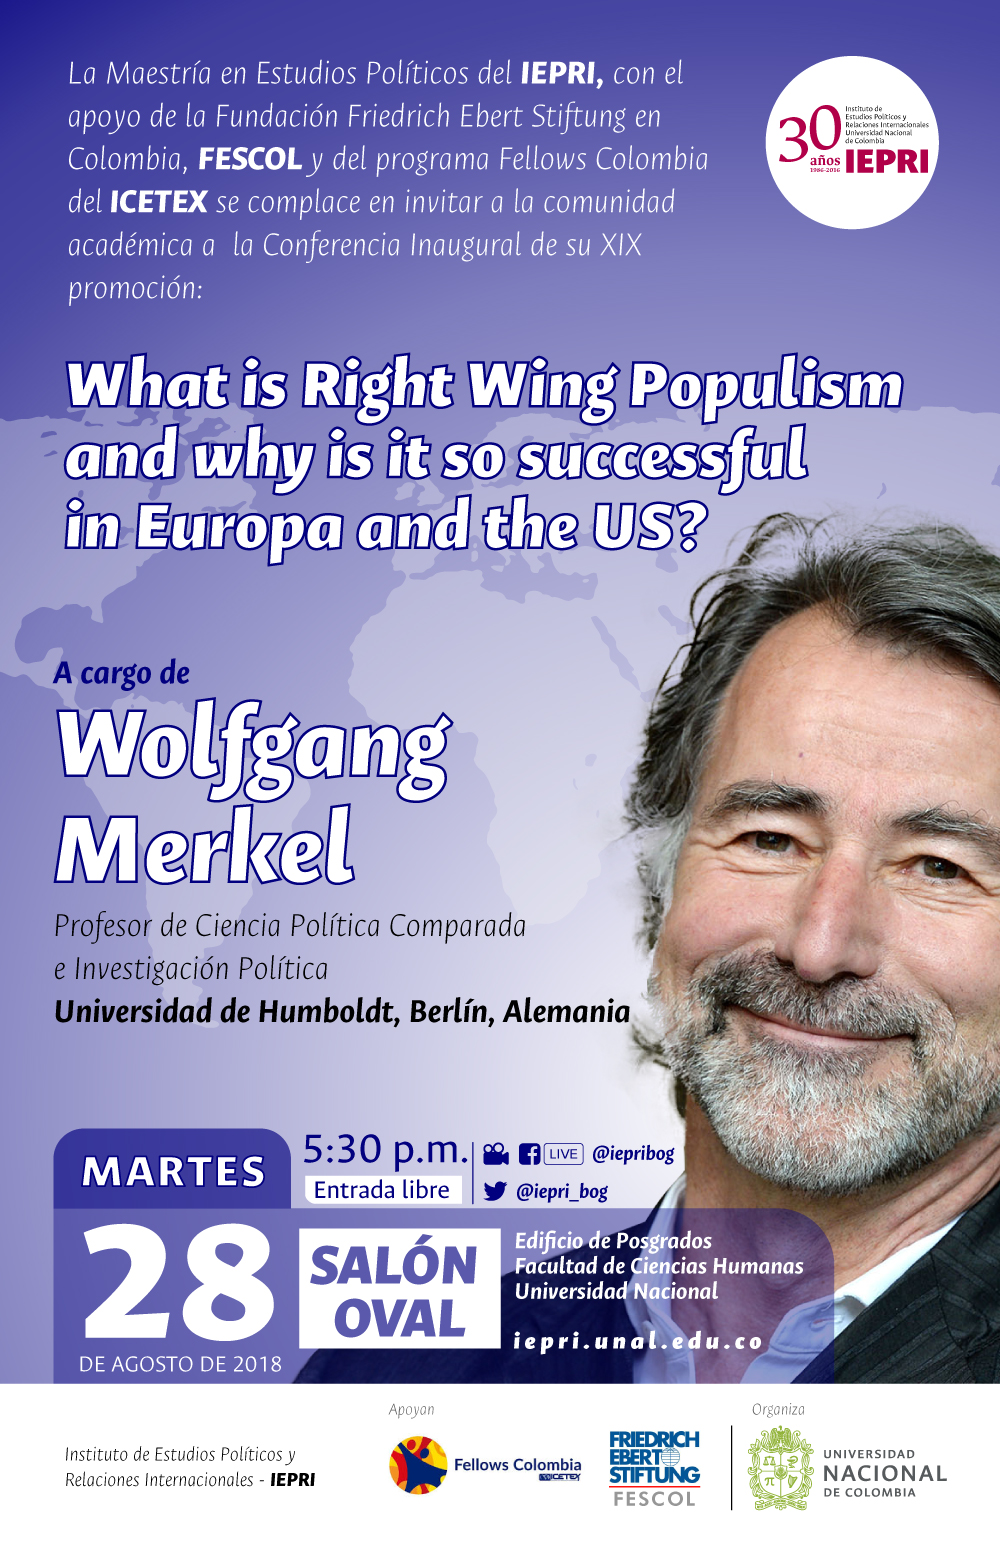 Conferencia «What is Right Wing Populism and why is it so successful in Europa and the US?» (Wolfgang Merkel)